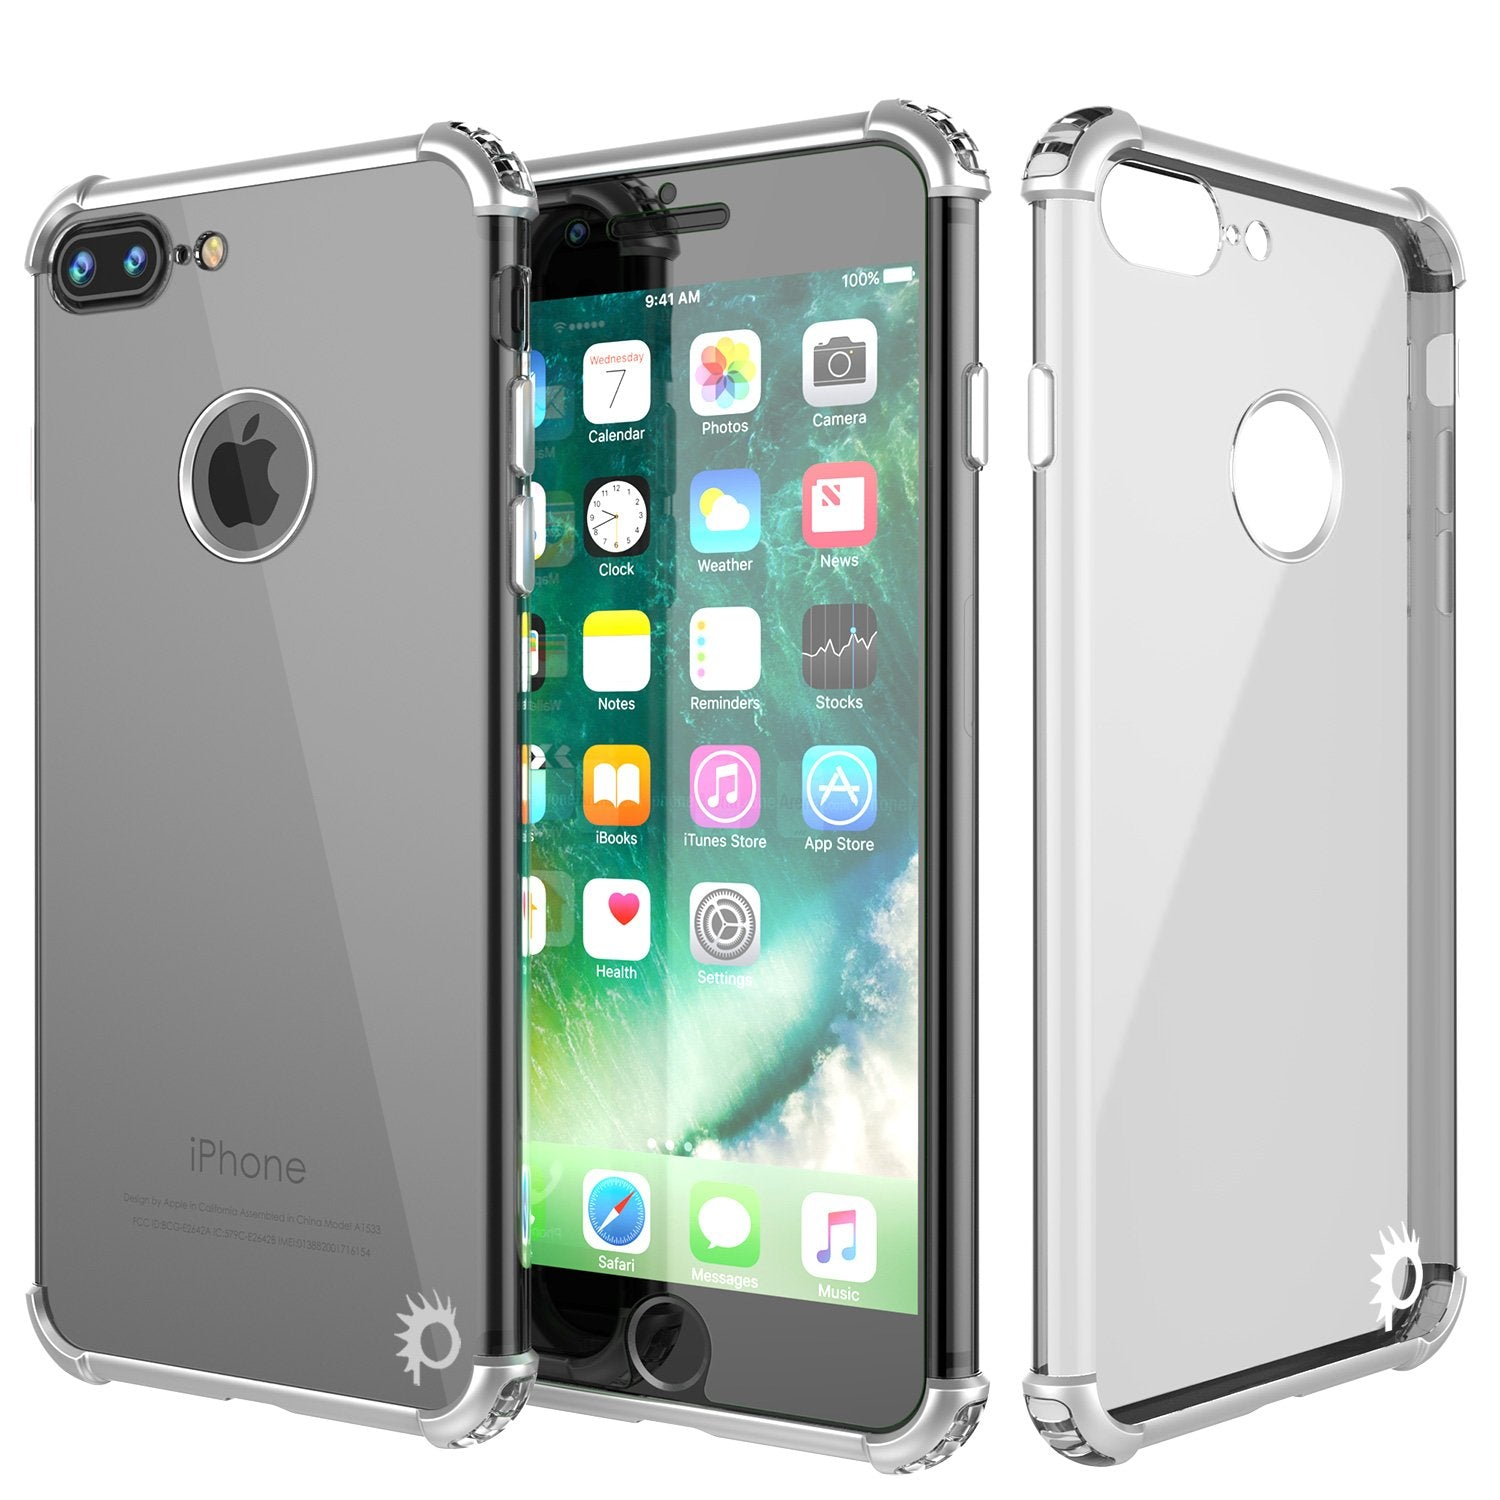 iPhone 7 PLUS Case, Punkcase [BLAZE SERIES] Protective Cover W/ PunkShield Screen Protector [Shockproof] [Slim Fit] for Apple iPhone 7 PLUS [Silver]